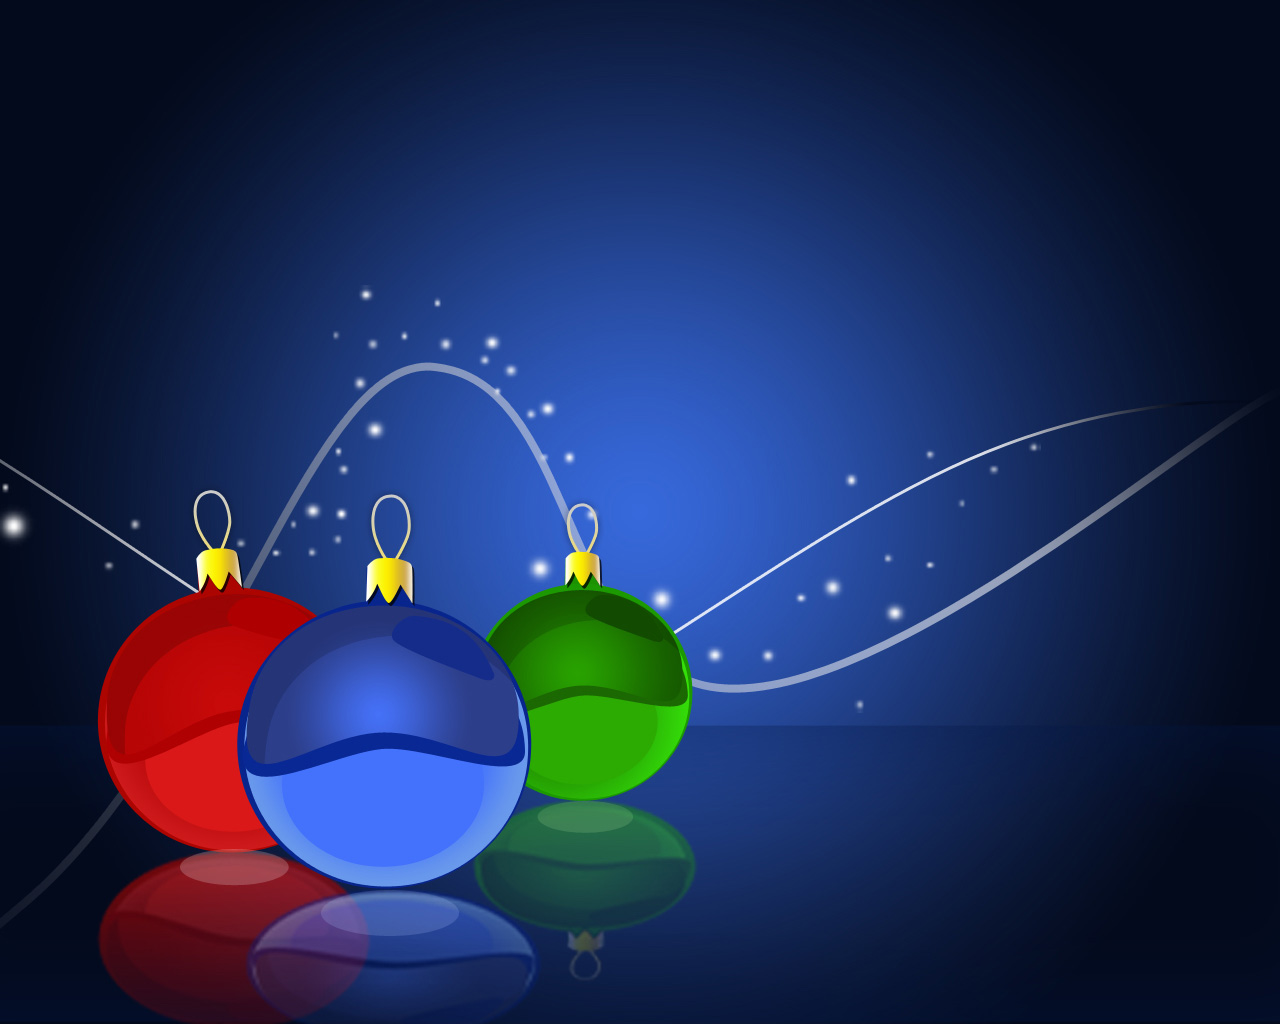 blue-new-year-2 (2)